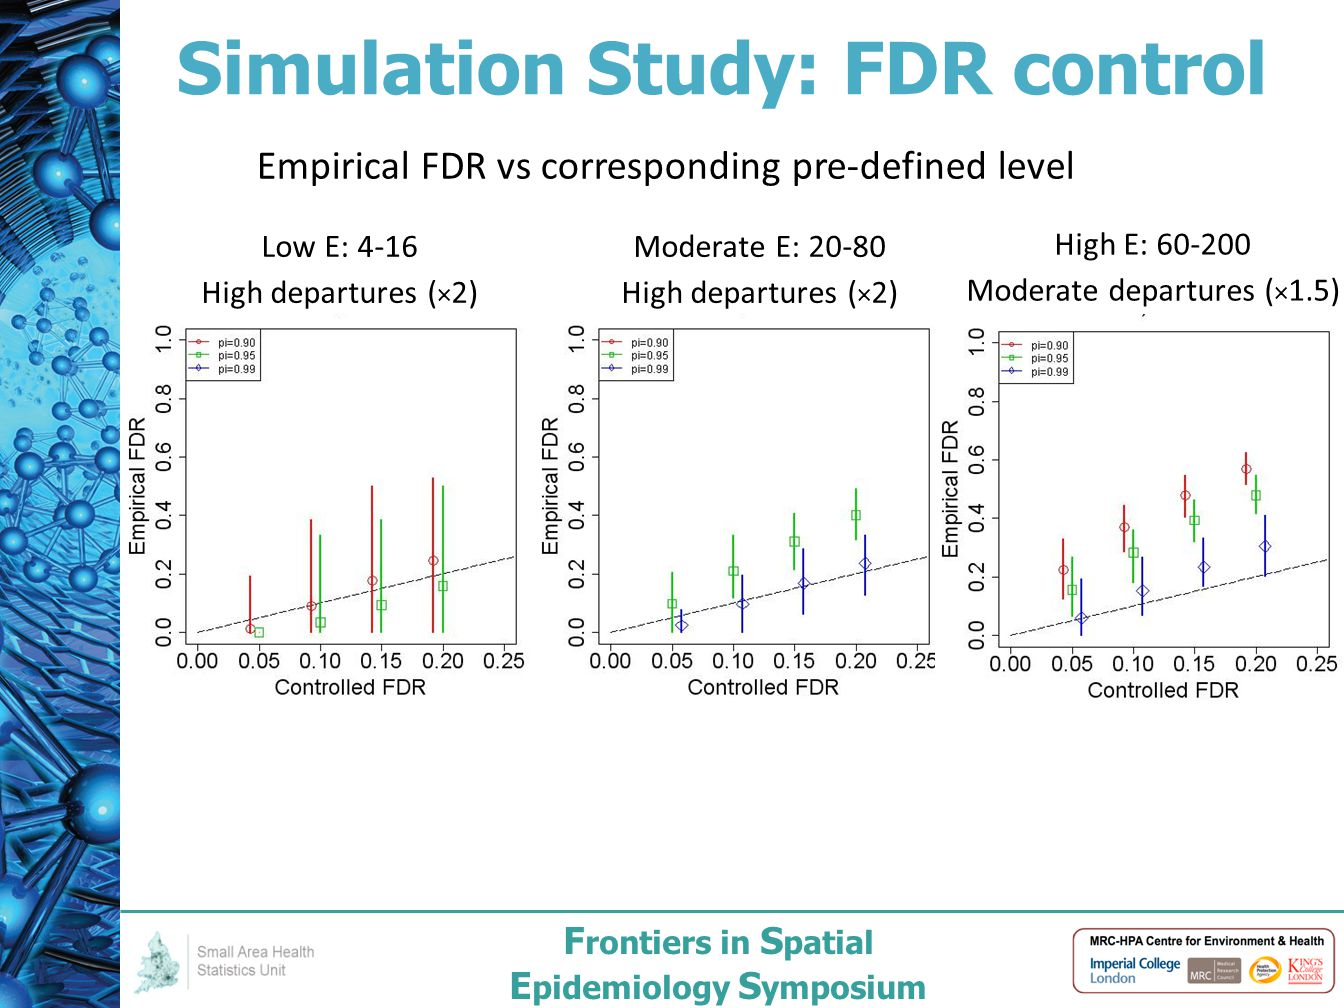 F rontiers in S patial E pidemiology S ymposium Simulation Study: FDR control Empirical FDR vs corresponding pre-defined level Low E: 4-16 High departures ( × 2) Moderate E: 20-80 High departures ( × 2) High E: 60-200 Moderate departures ( × 1.5)